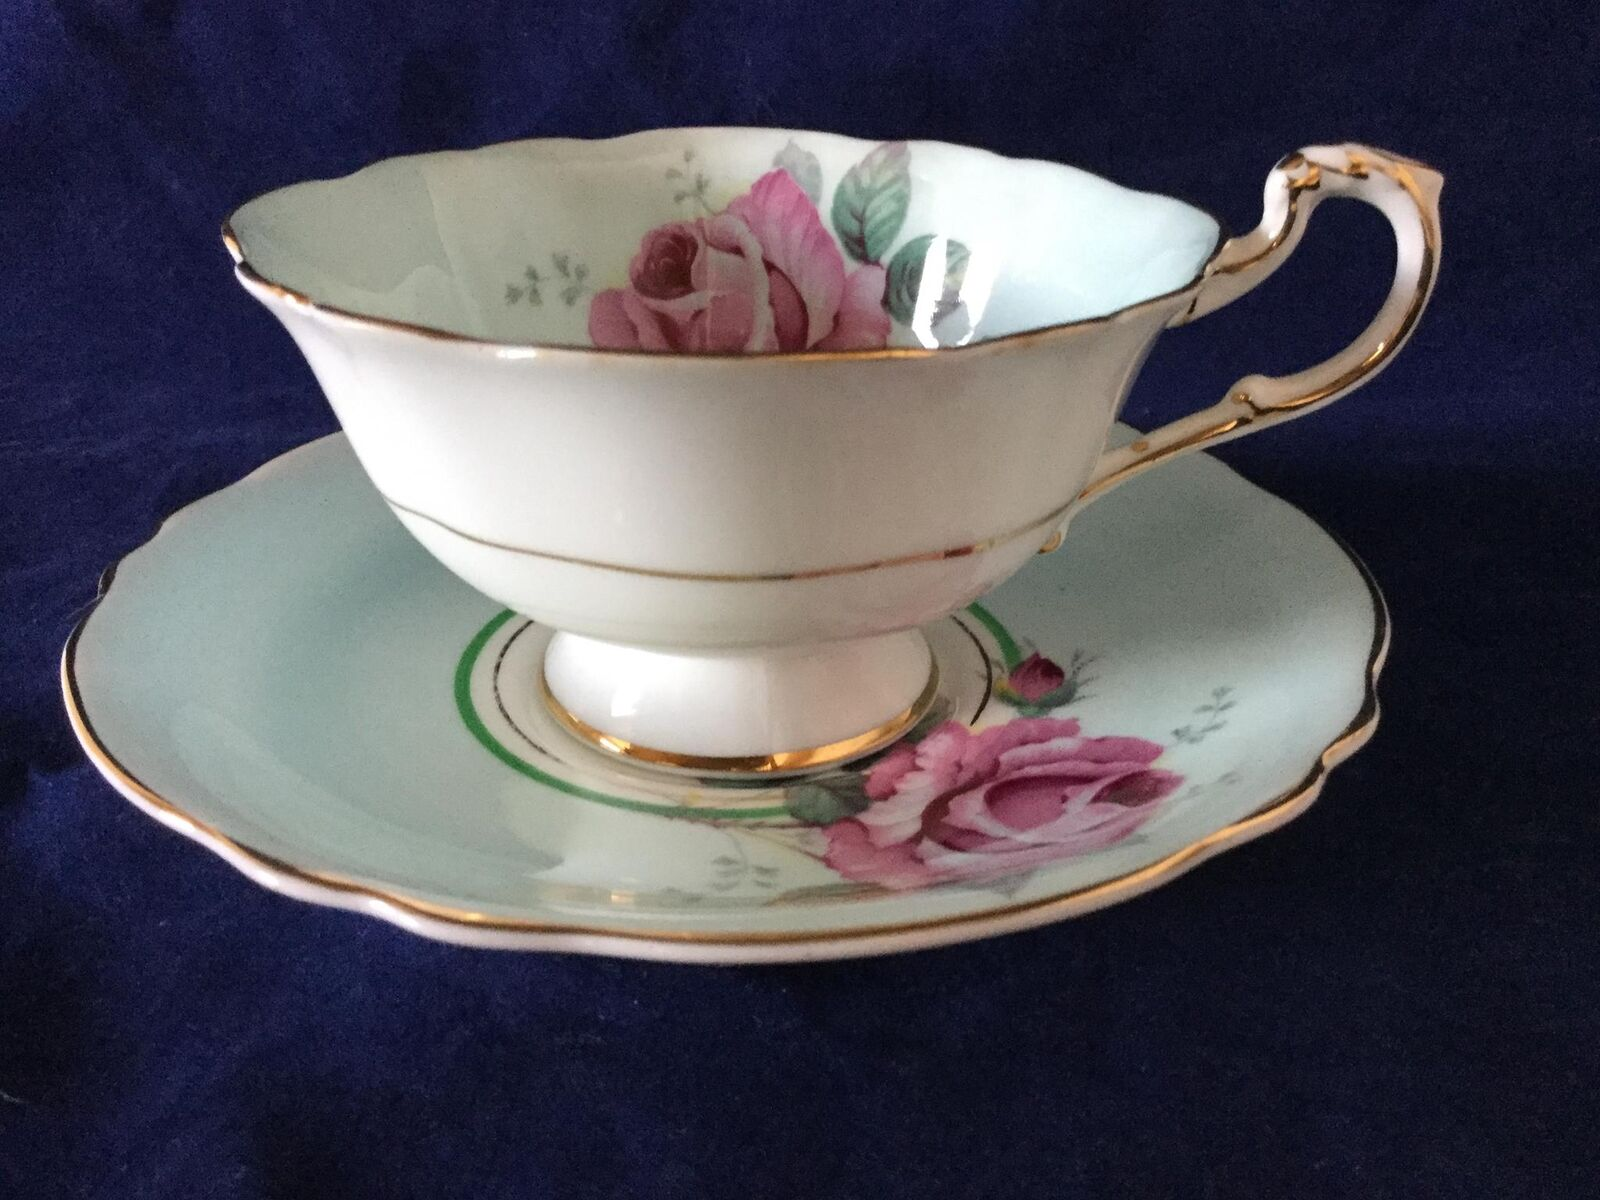 Vintage Paragon White Light bluee with Pink pinks Tea Cup & Saucer - FREE SHIP